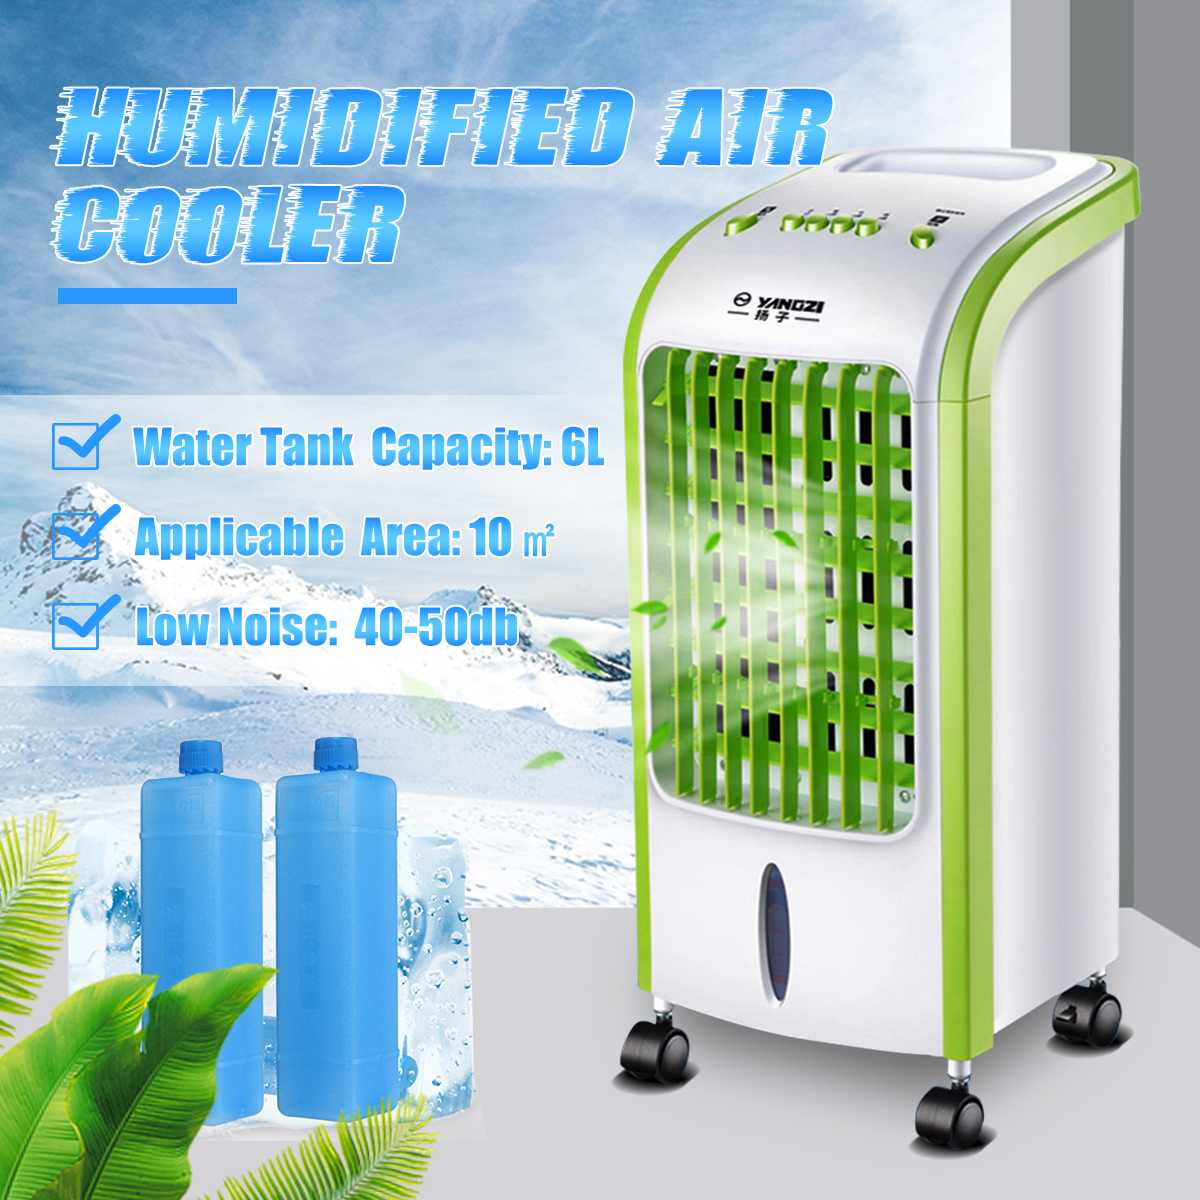 Portable Air Conditioner Cooling Conditioning Fan Humidifier Cooler Cooling System 220V Mini Air Conditioner With 2 Ice Crystal